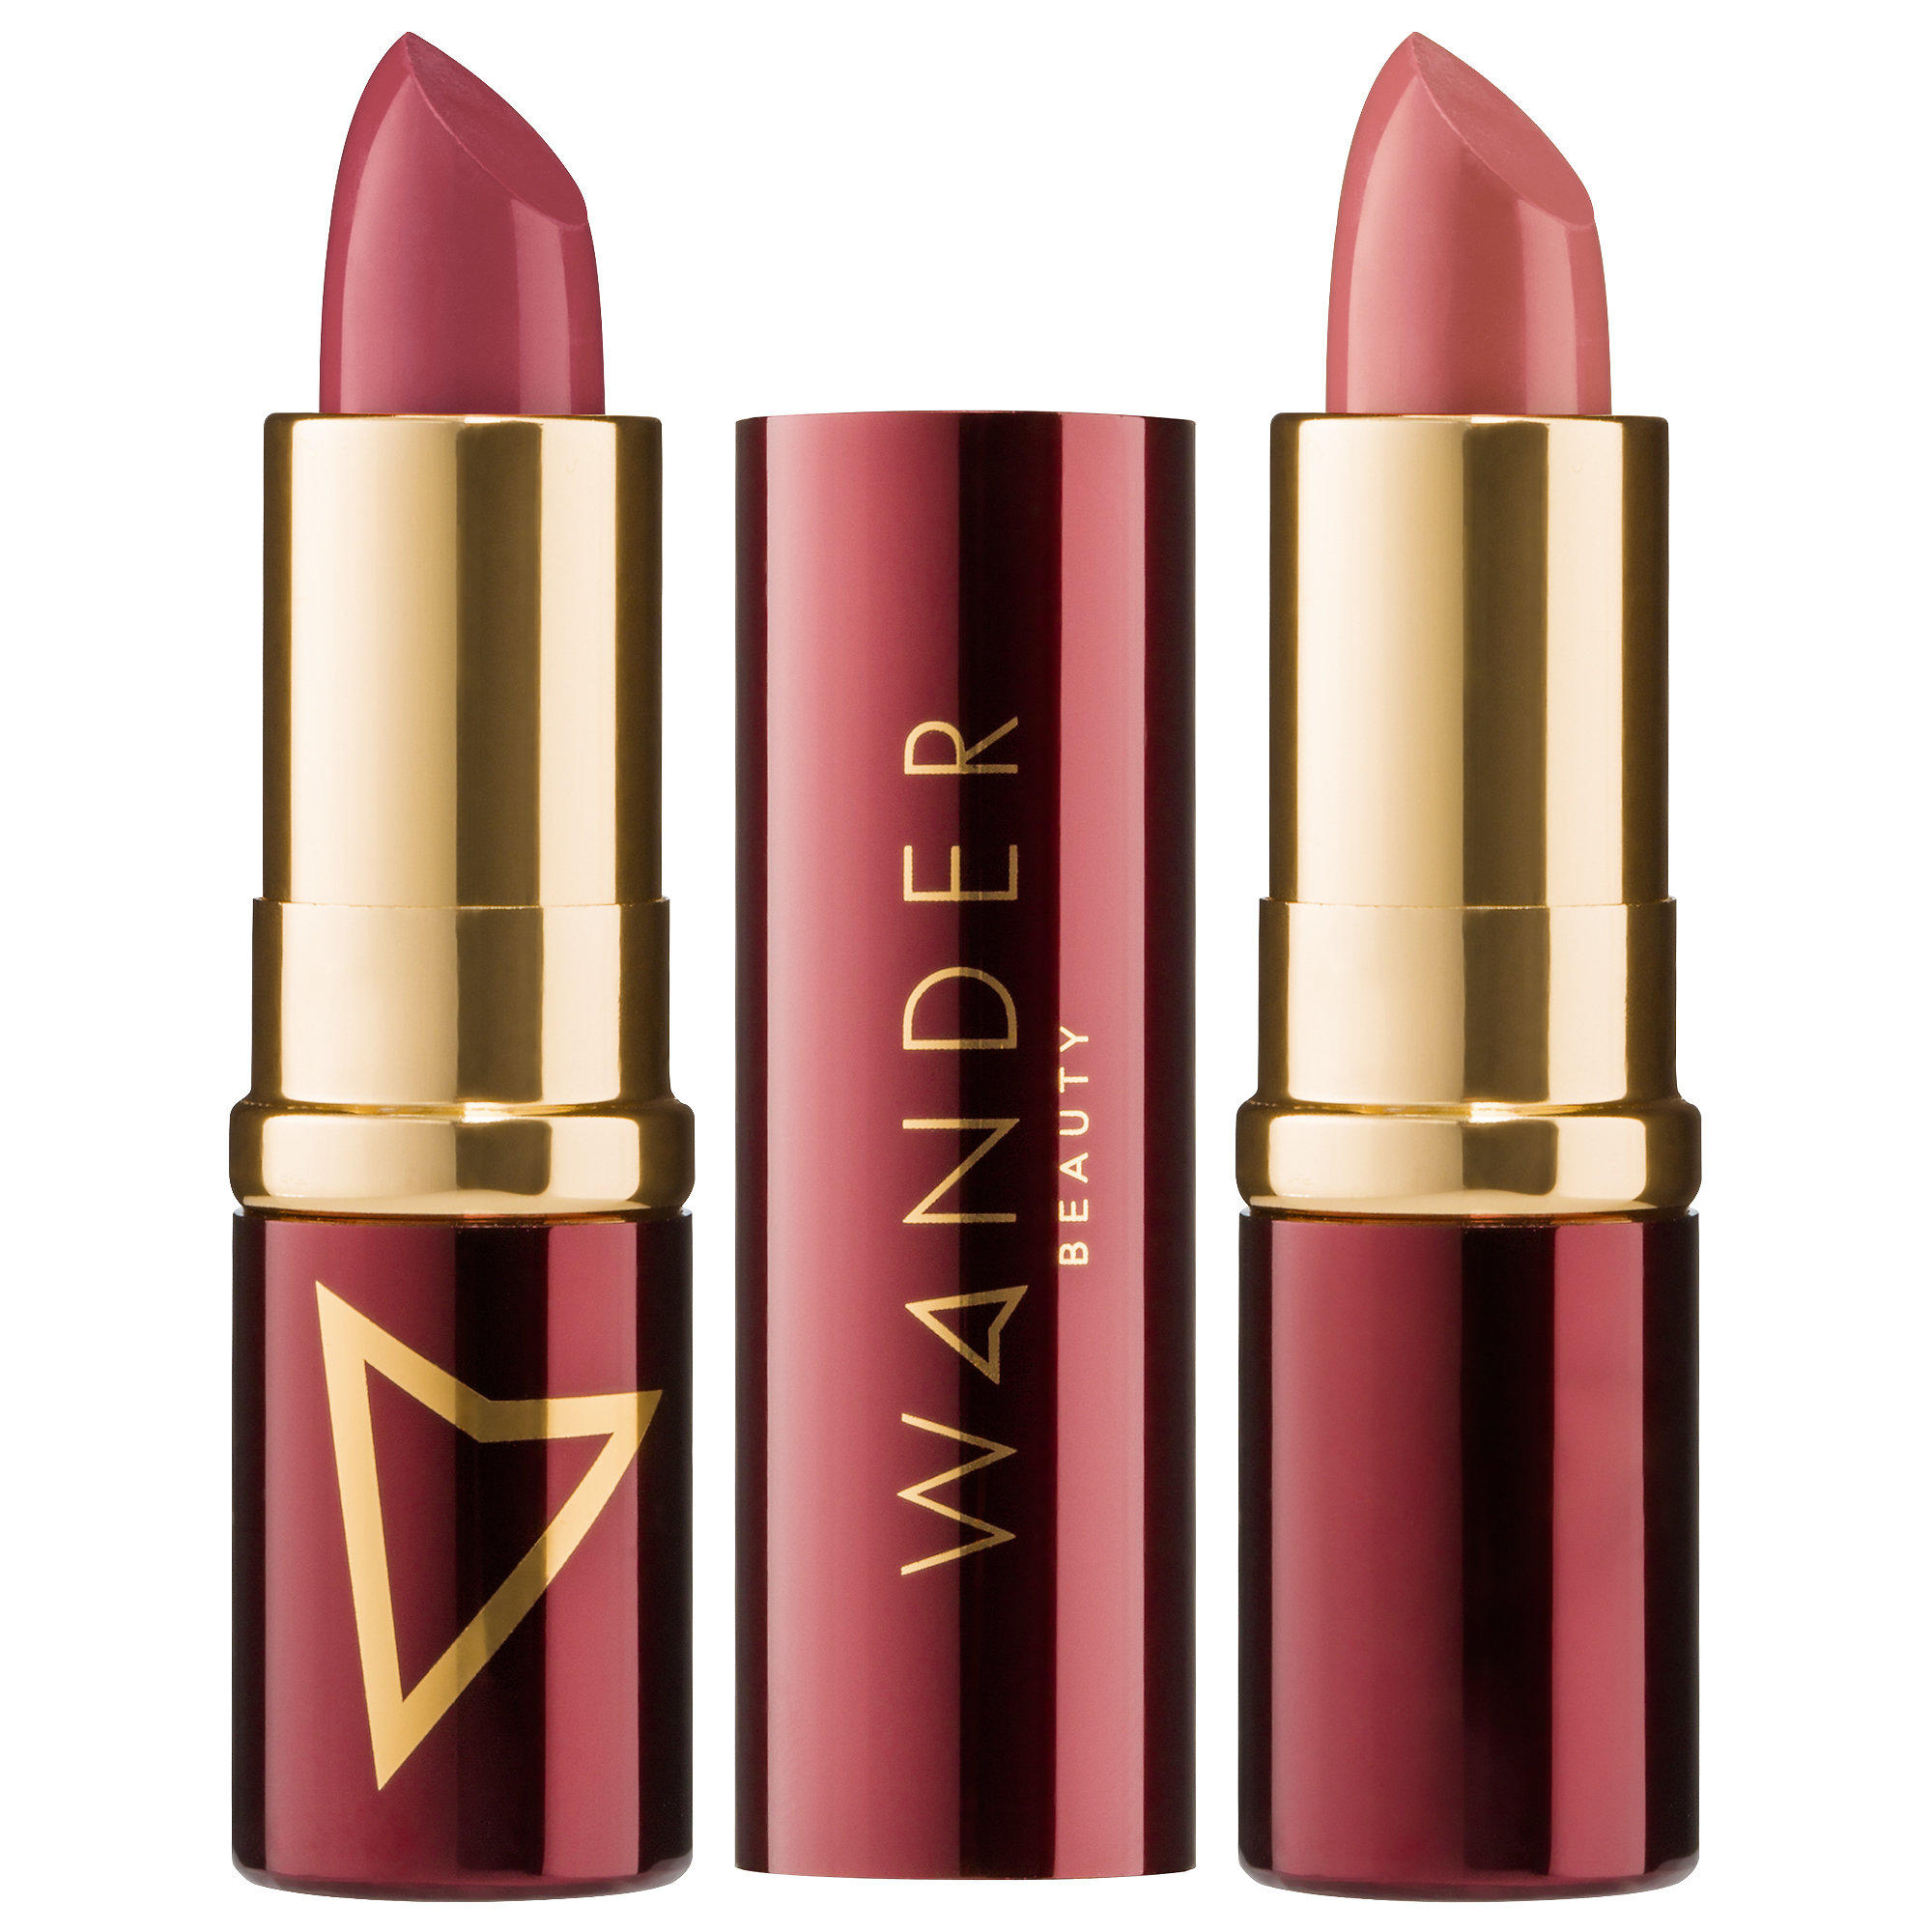 Wander Beauty Wanderout Dual Lipstick Miss Behave / Girl Boss